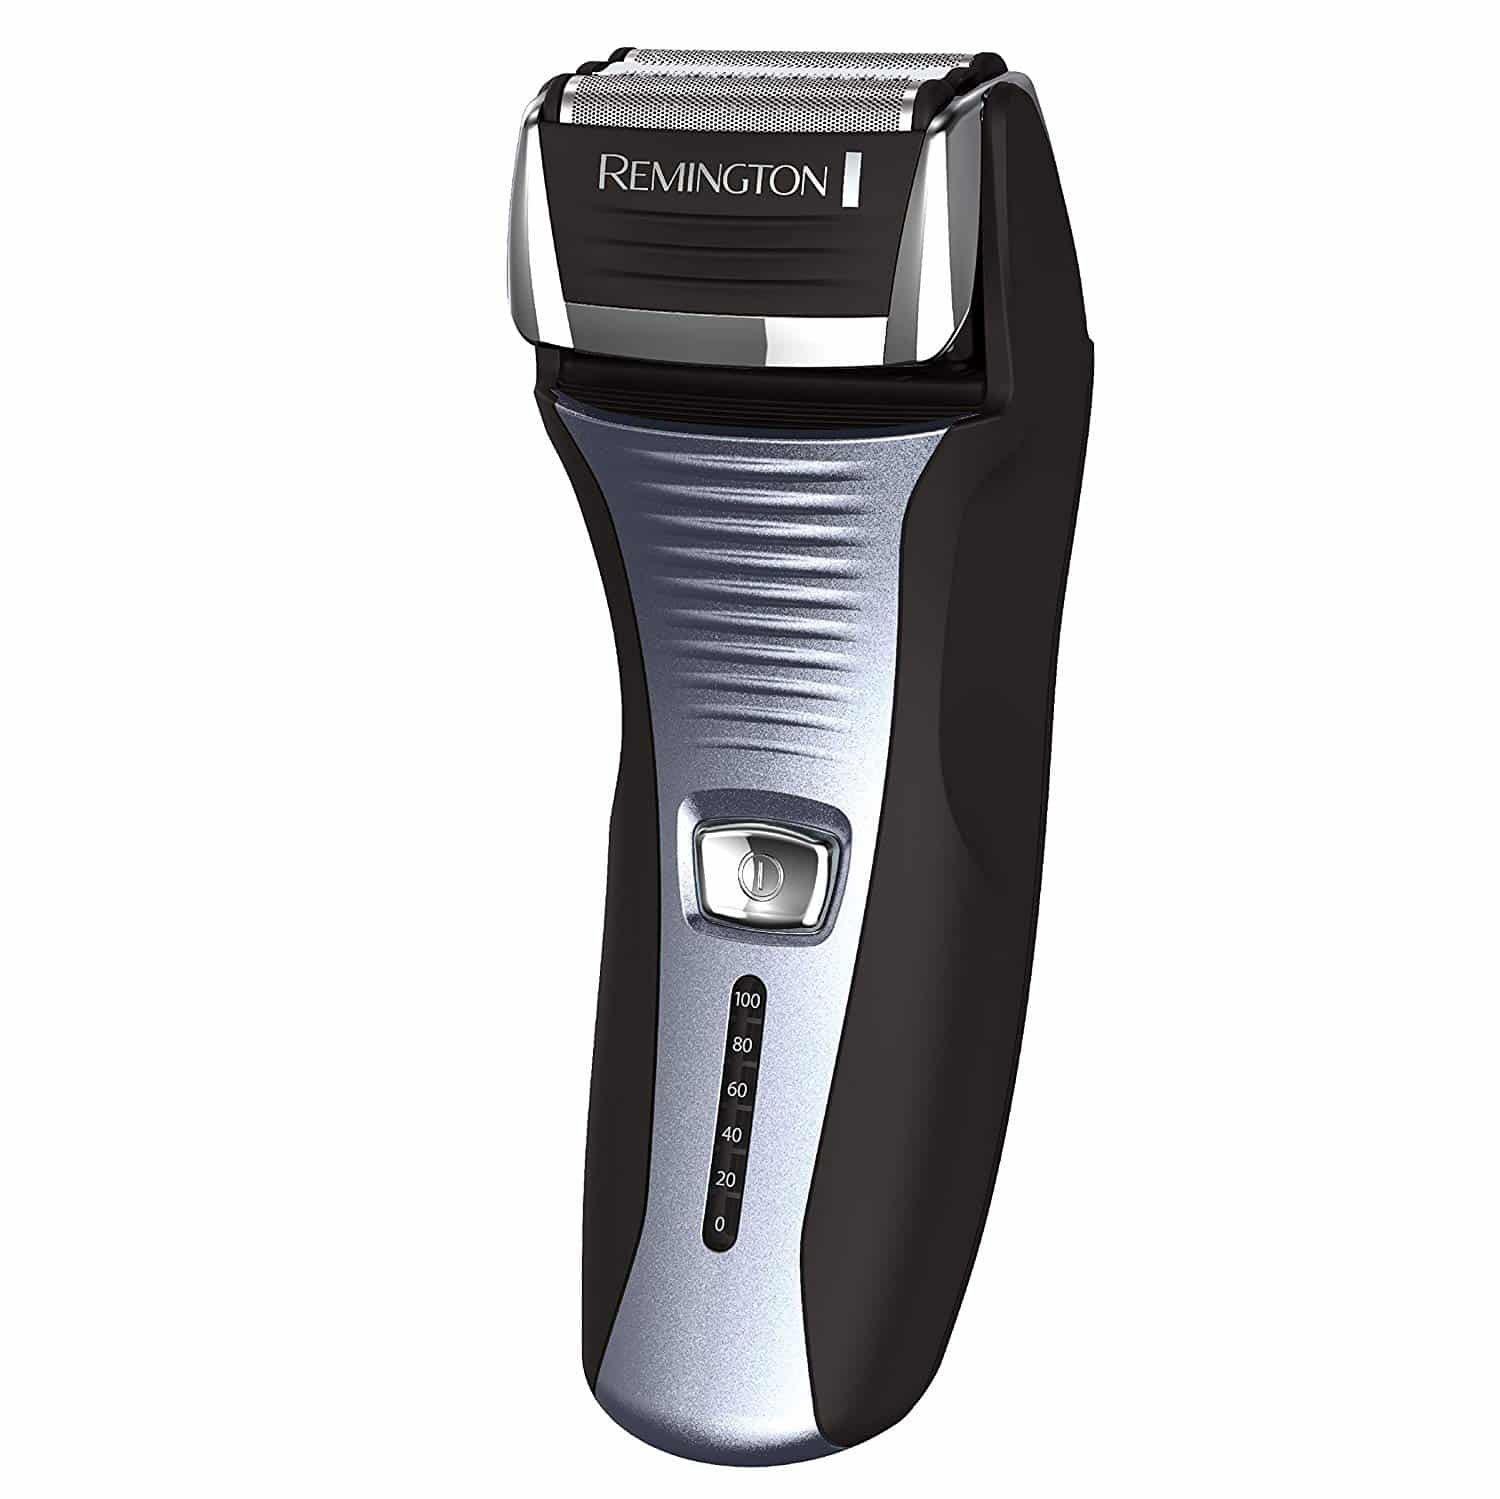 Remington F5-5800 Electric Shaver